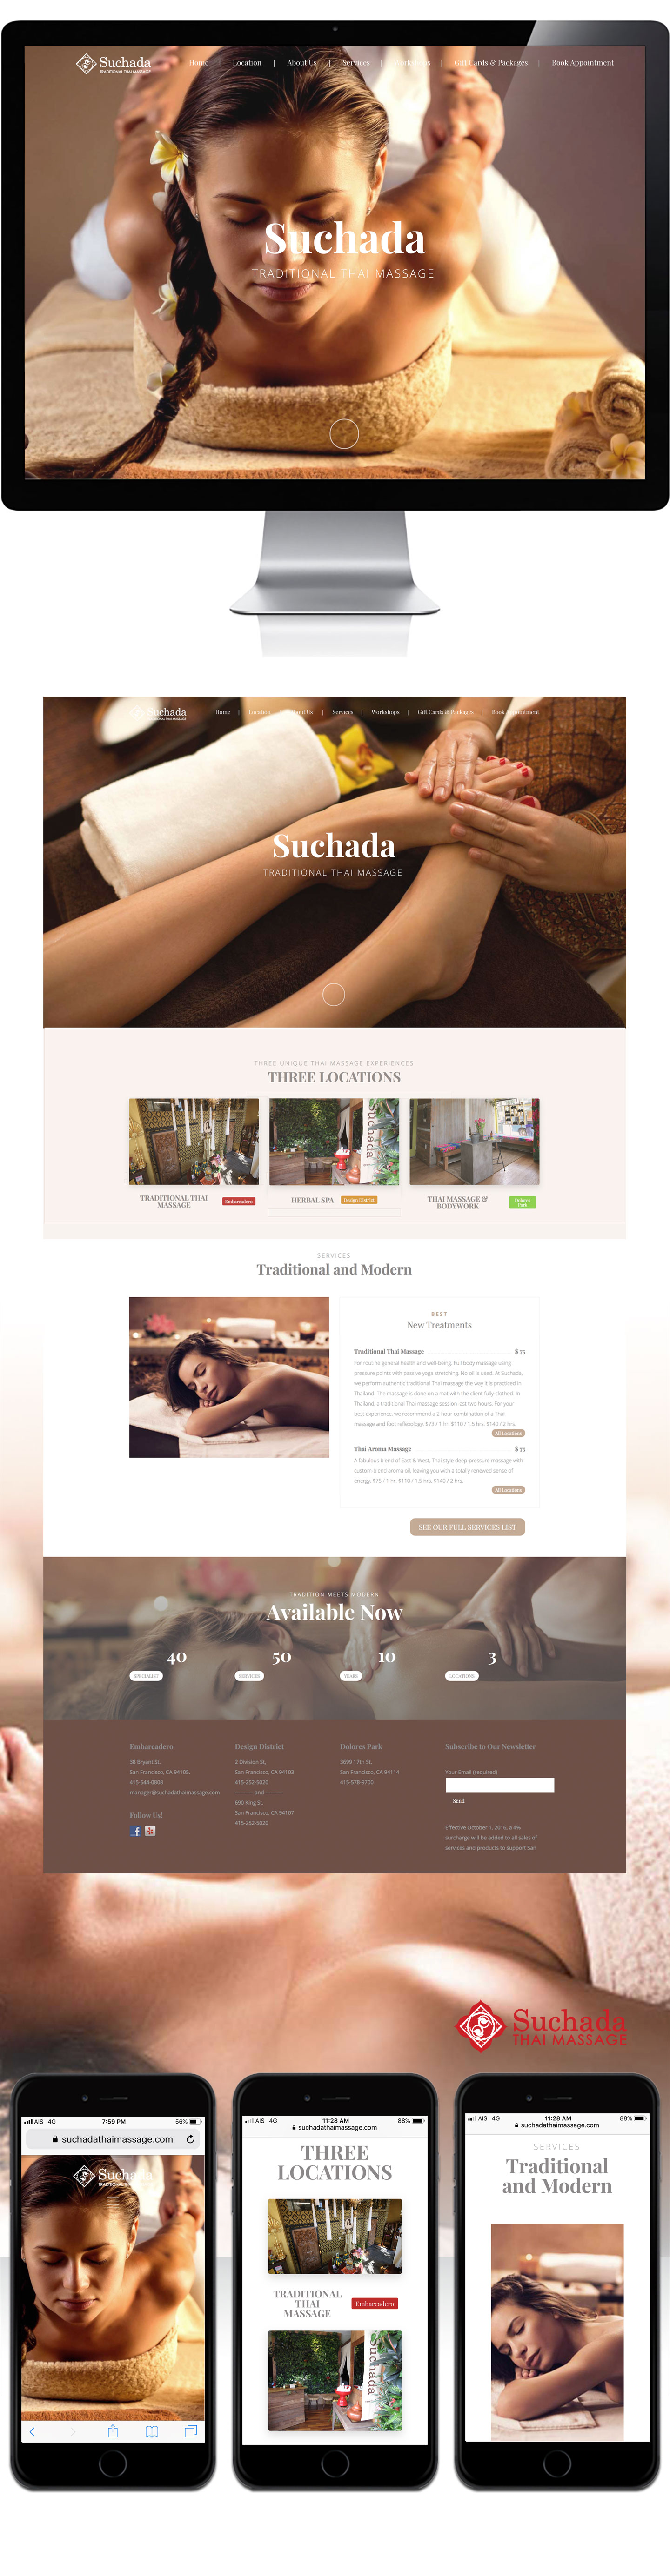 suchada thai massage website design